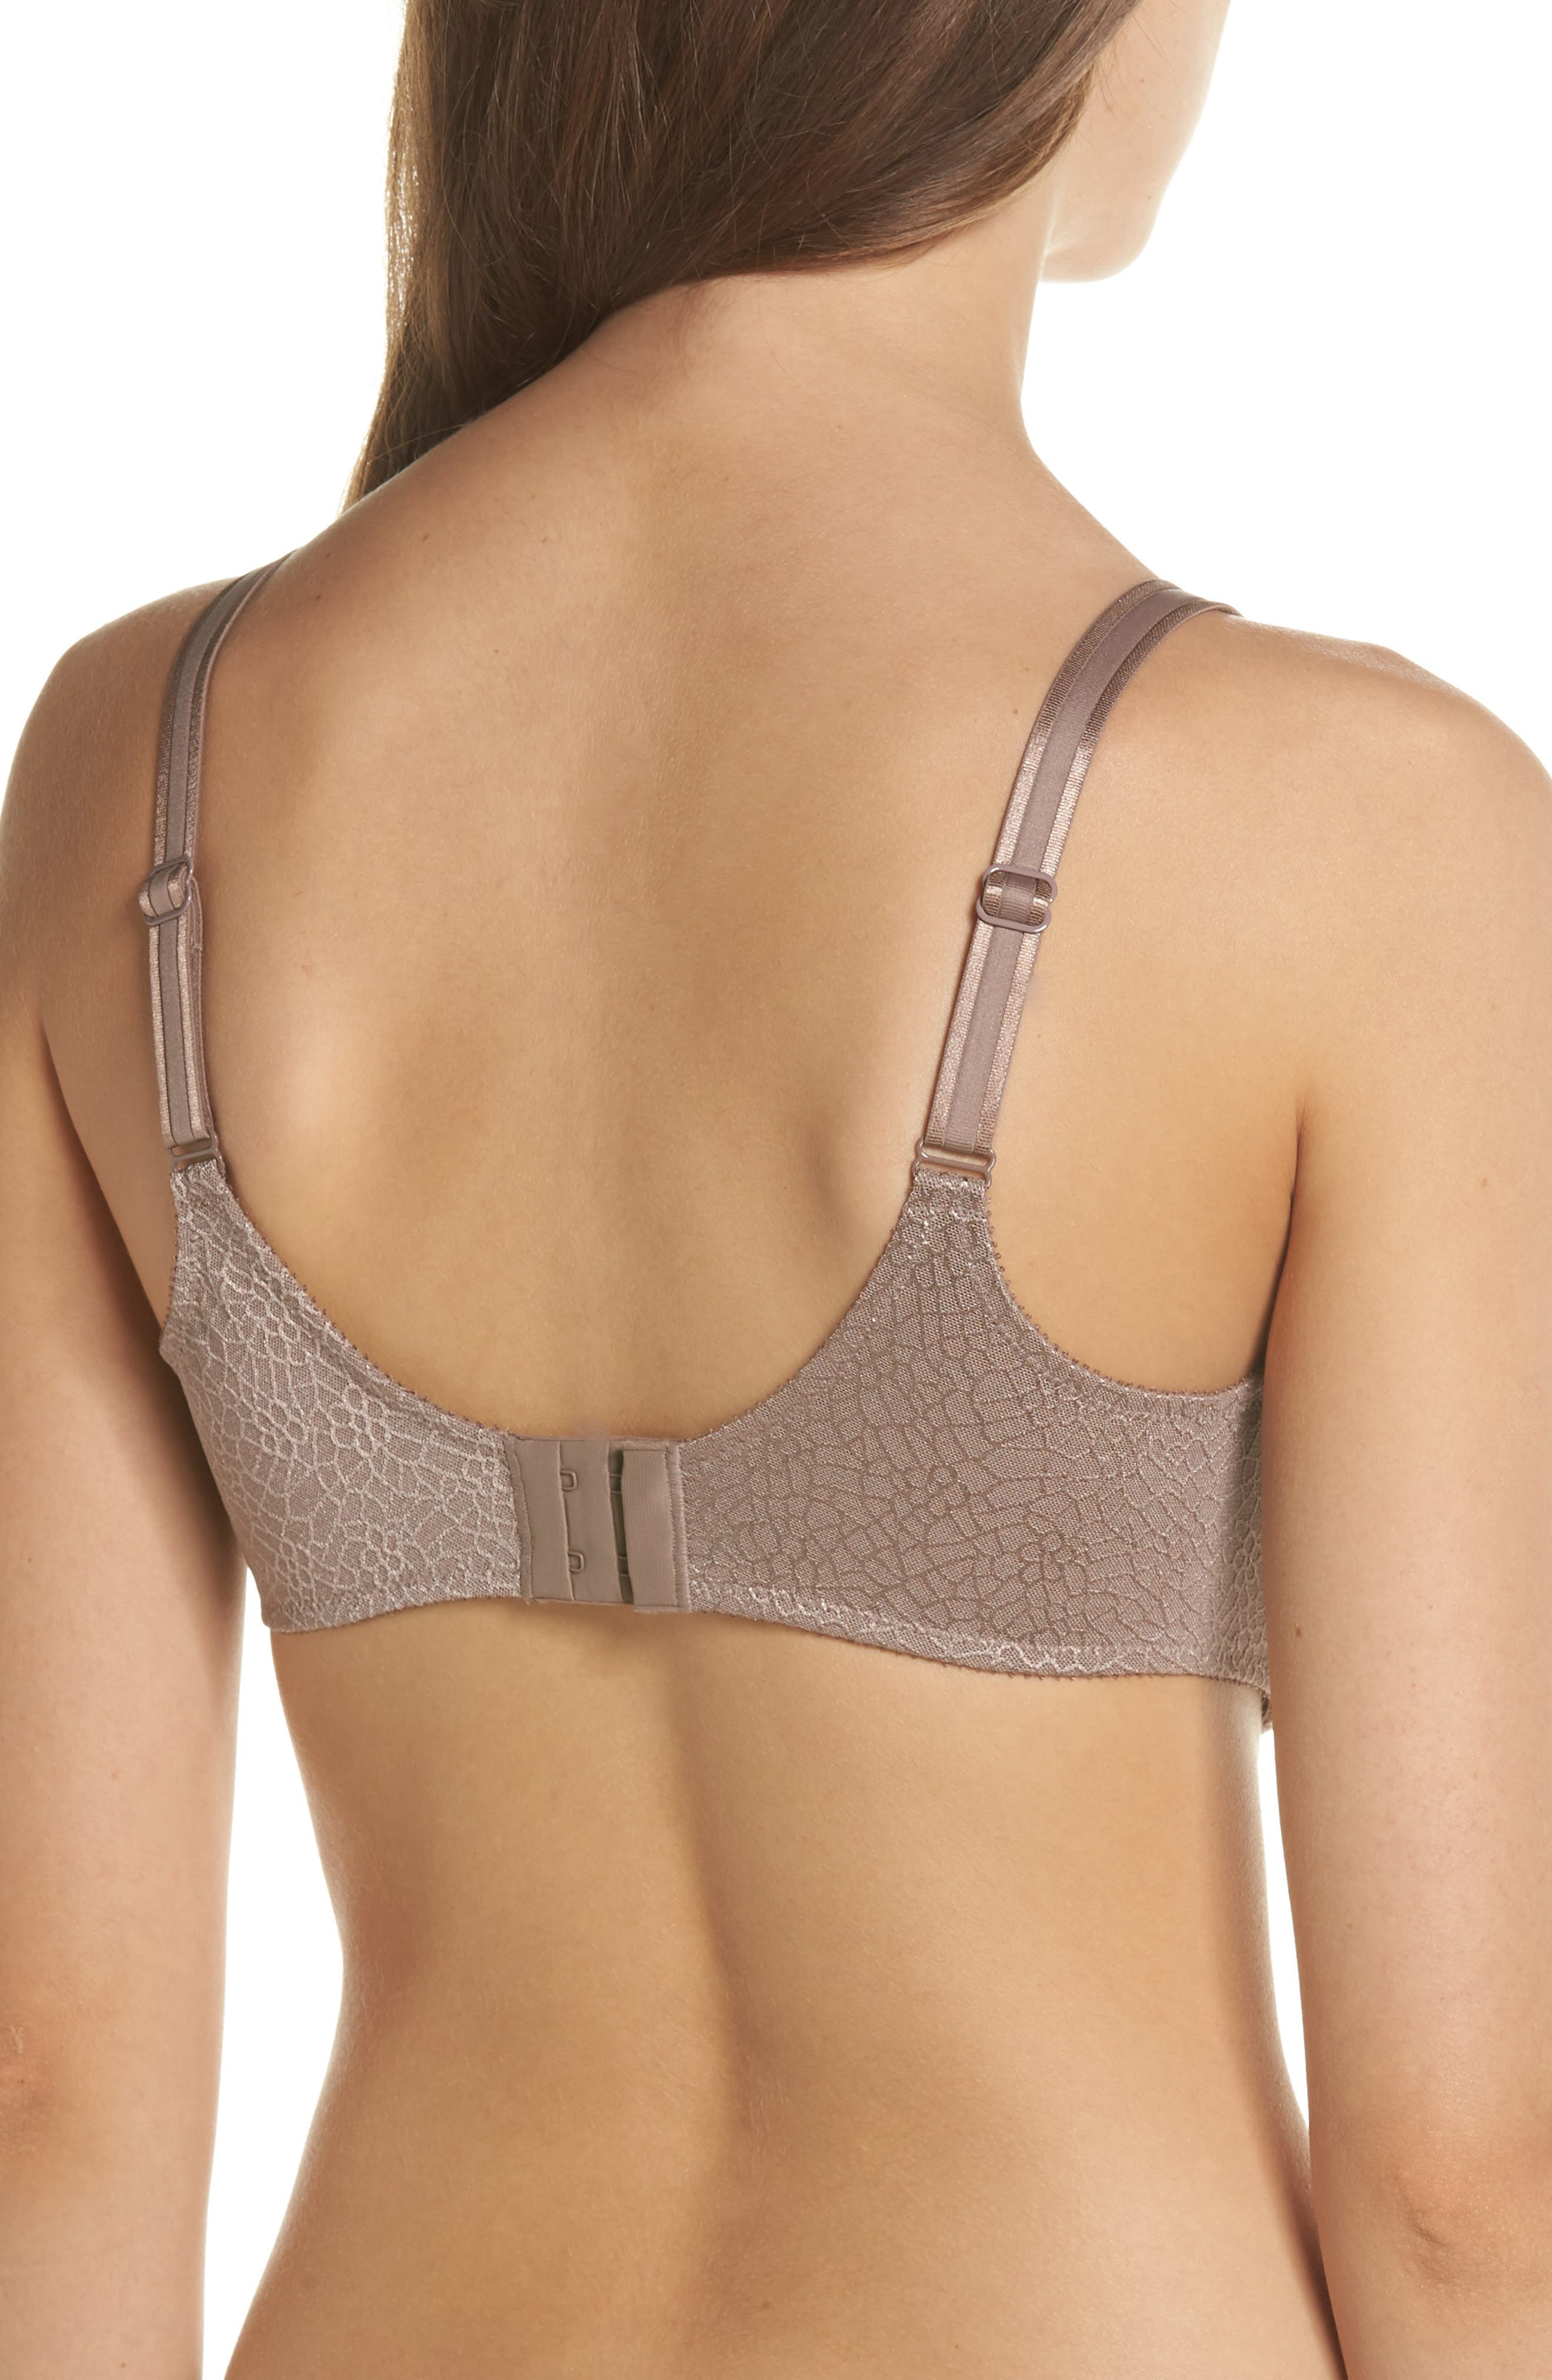 CHANTELLE LINGERIE, C Magnifique Underwire Minimizer Bra, Alternate thumbnail 2, color, HAZELNUT